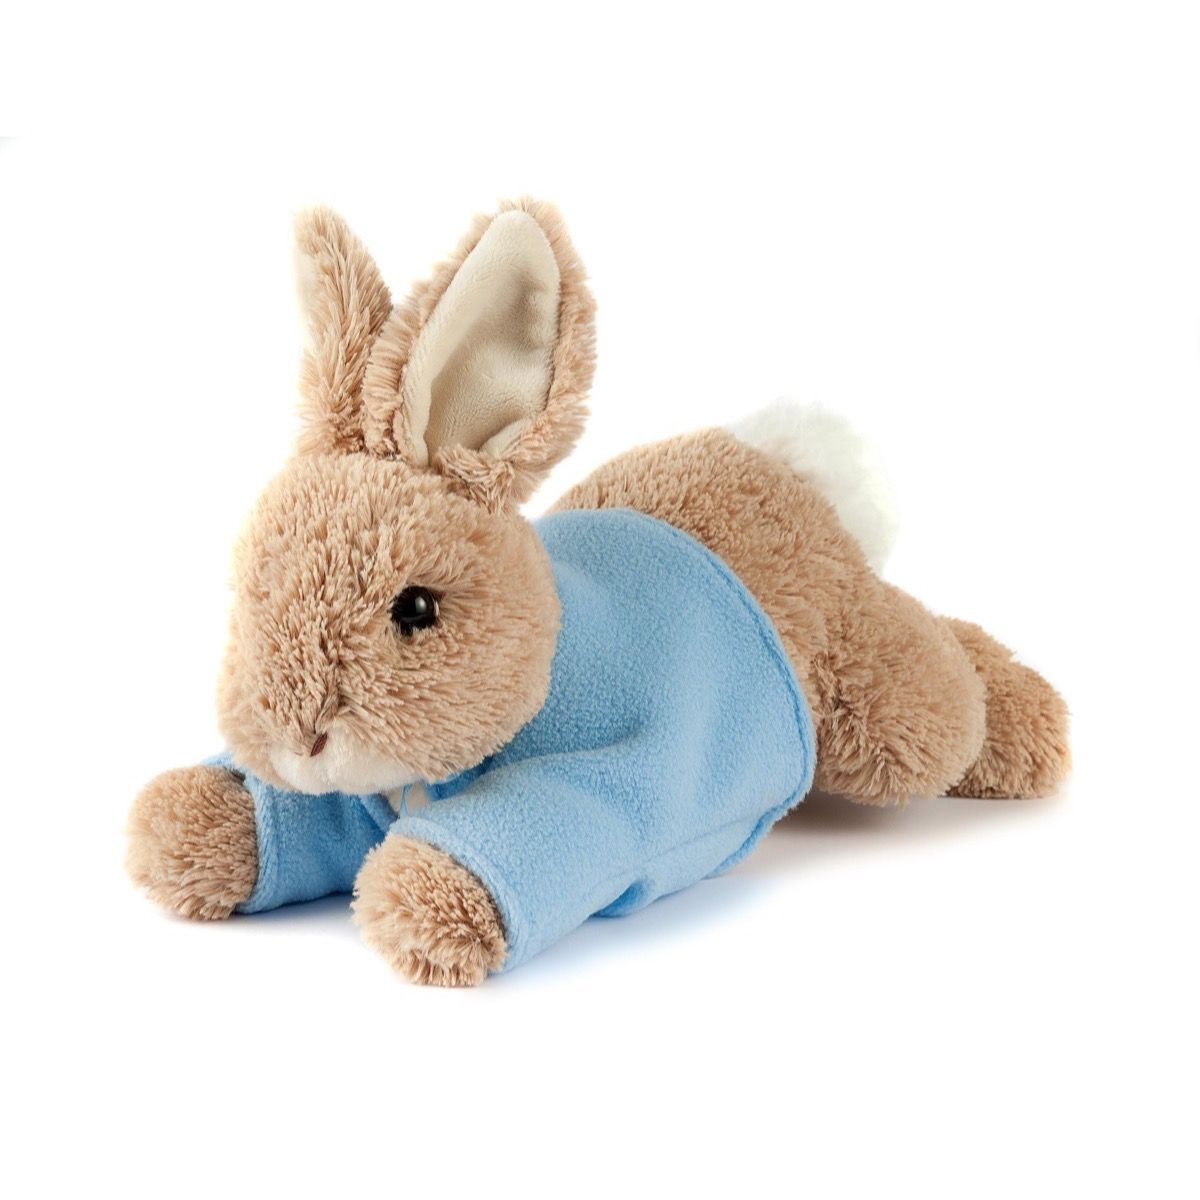 Plush Peter Rabbit. A delightful new plush toy featuring a much loved character from the Beatrix Potter books, Peter Rabbit. This captivating plaything is made by Gund - world renowned for it's top quality, soft and huggable plush toys - and is hand washable. Measuring 12' (30cms) from nose to tail, Peter will become a lovely companion for any child aged 1+.